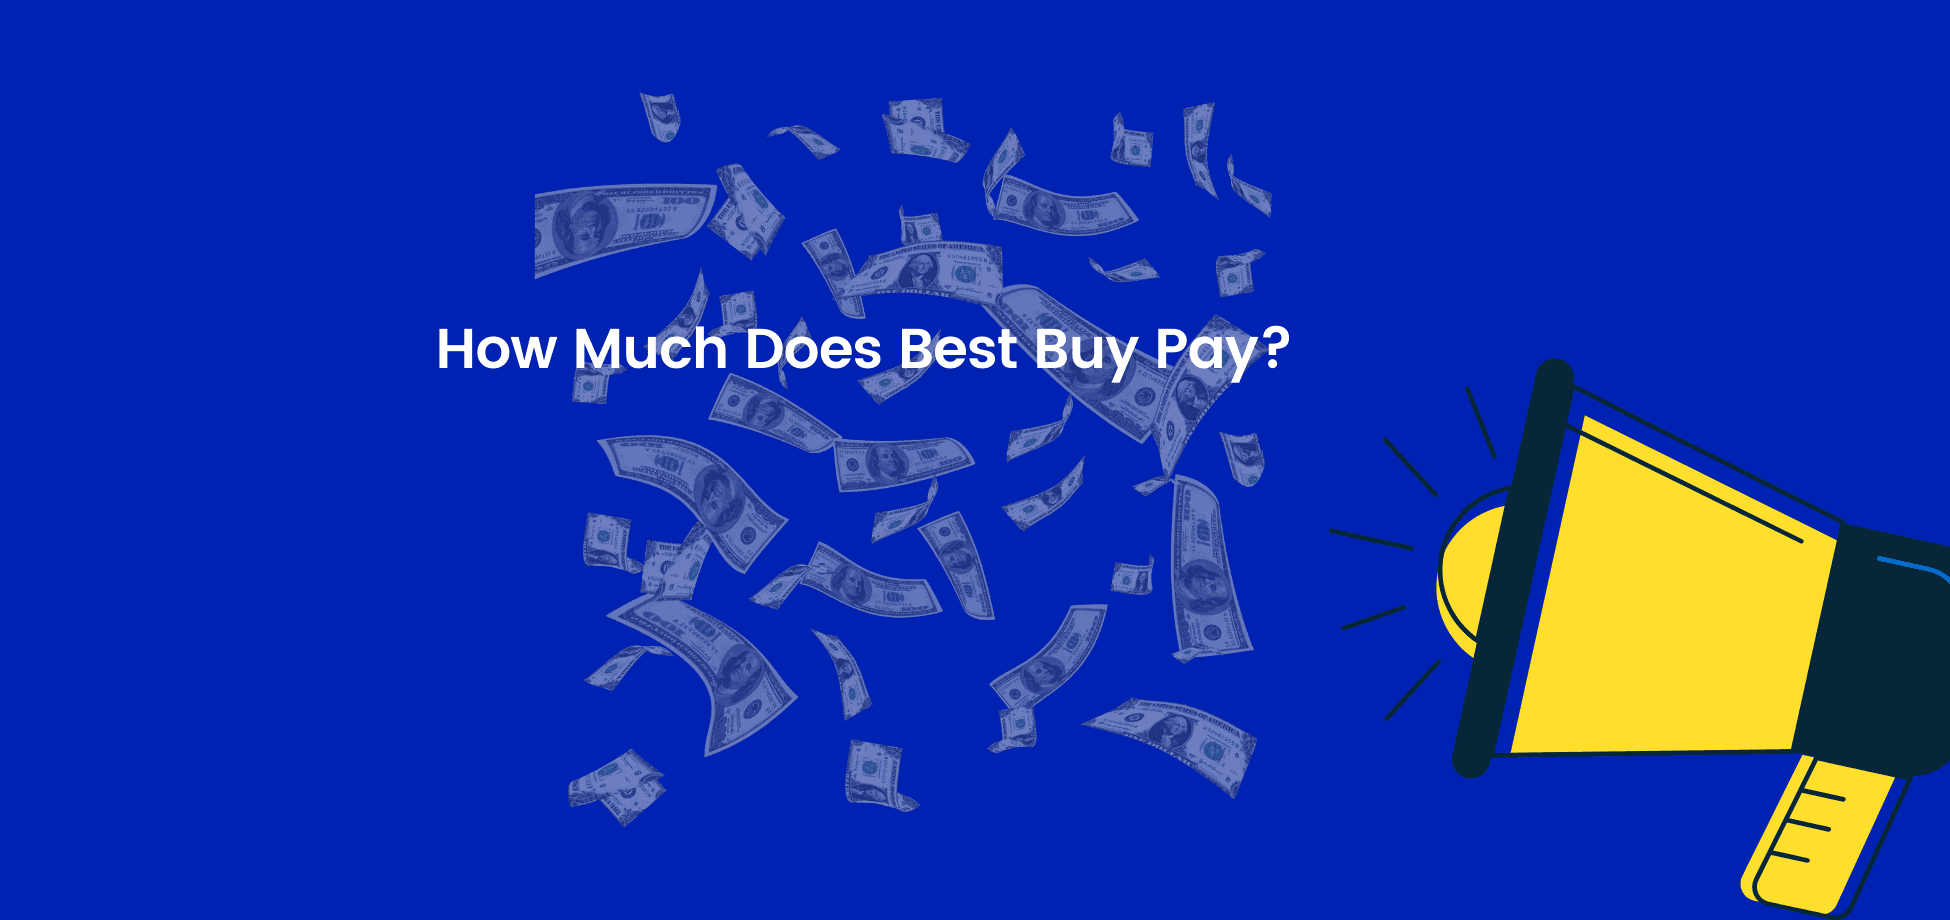 Best Buy recently gave its workers a livable starting wage.